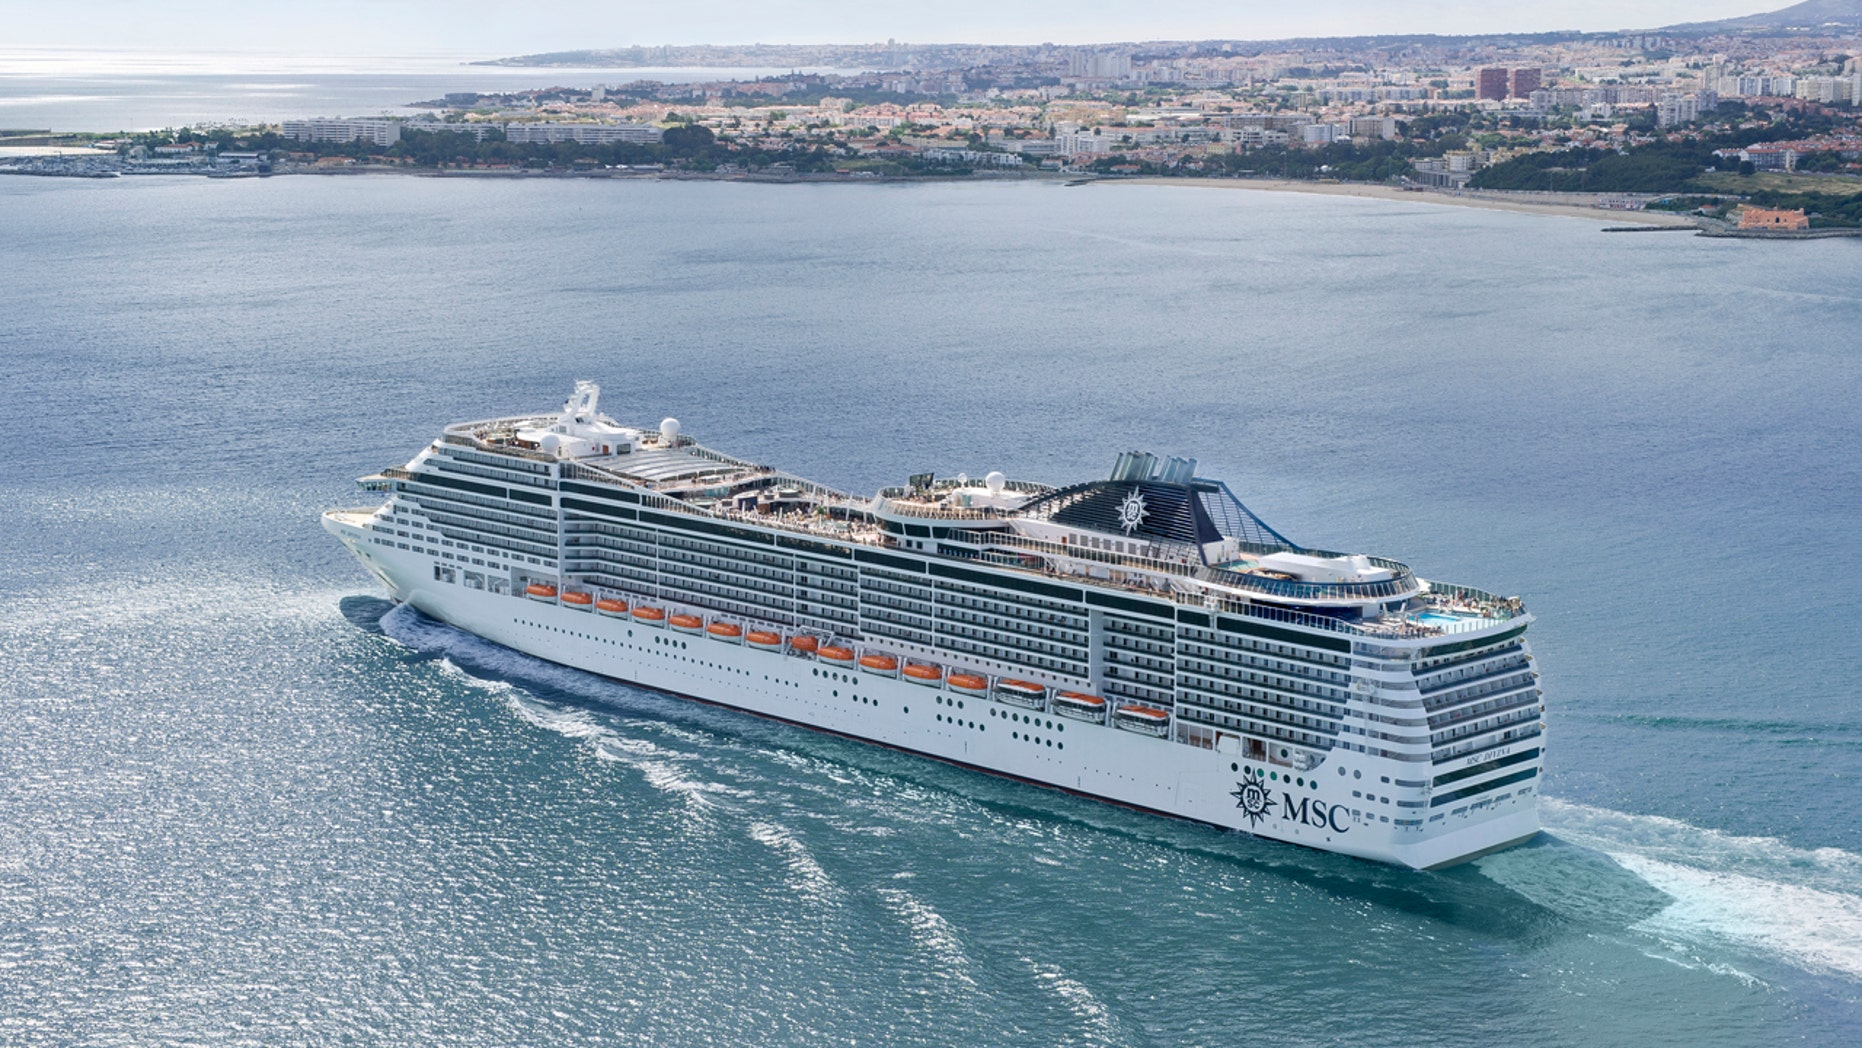 The MSC Divina is hosting the first ever Weight Watchers cruise this May.